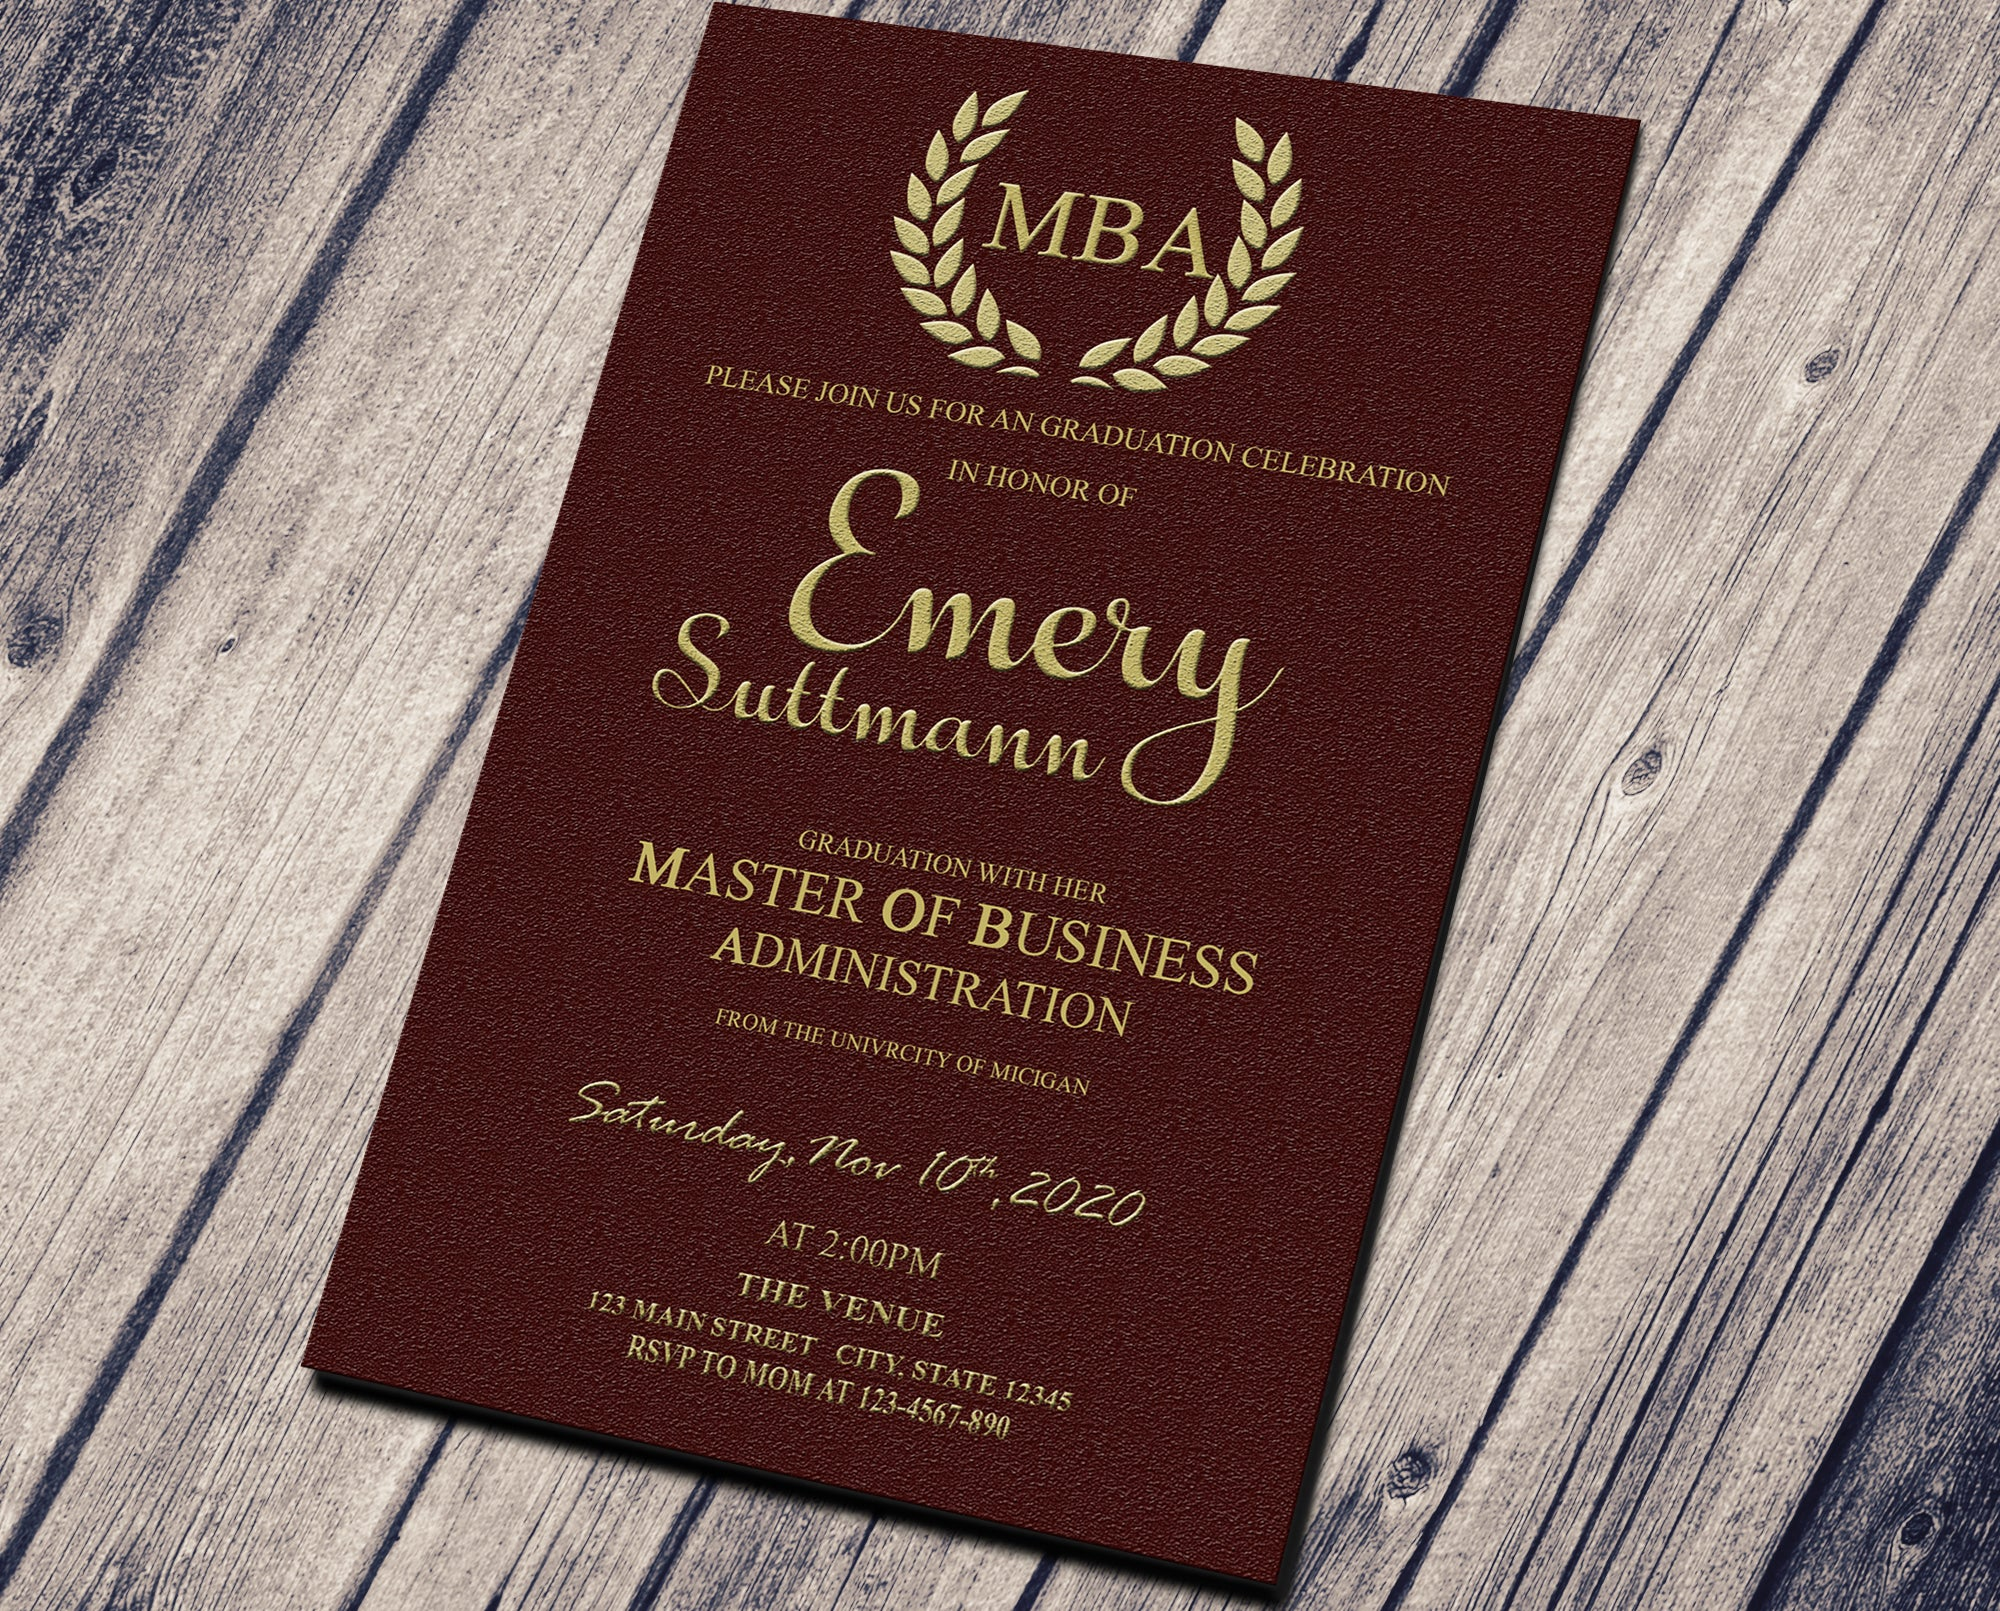 GRADUATION PARTY INVITATION - ELEGANT BROWN TEXTURED